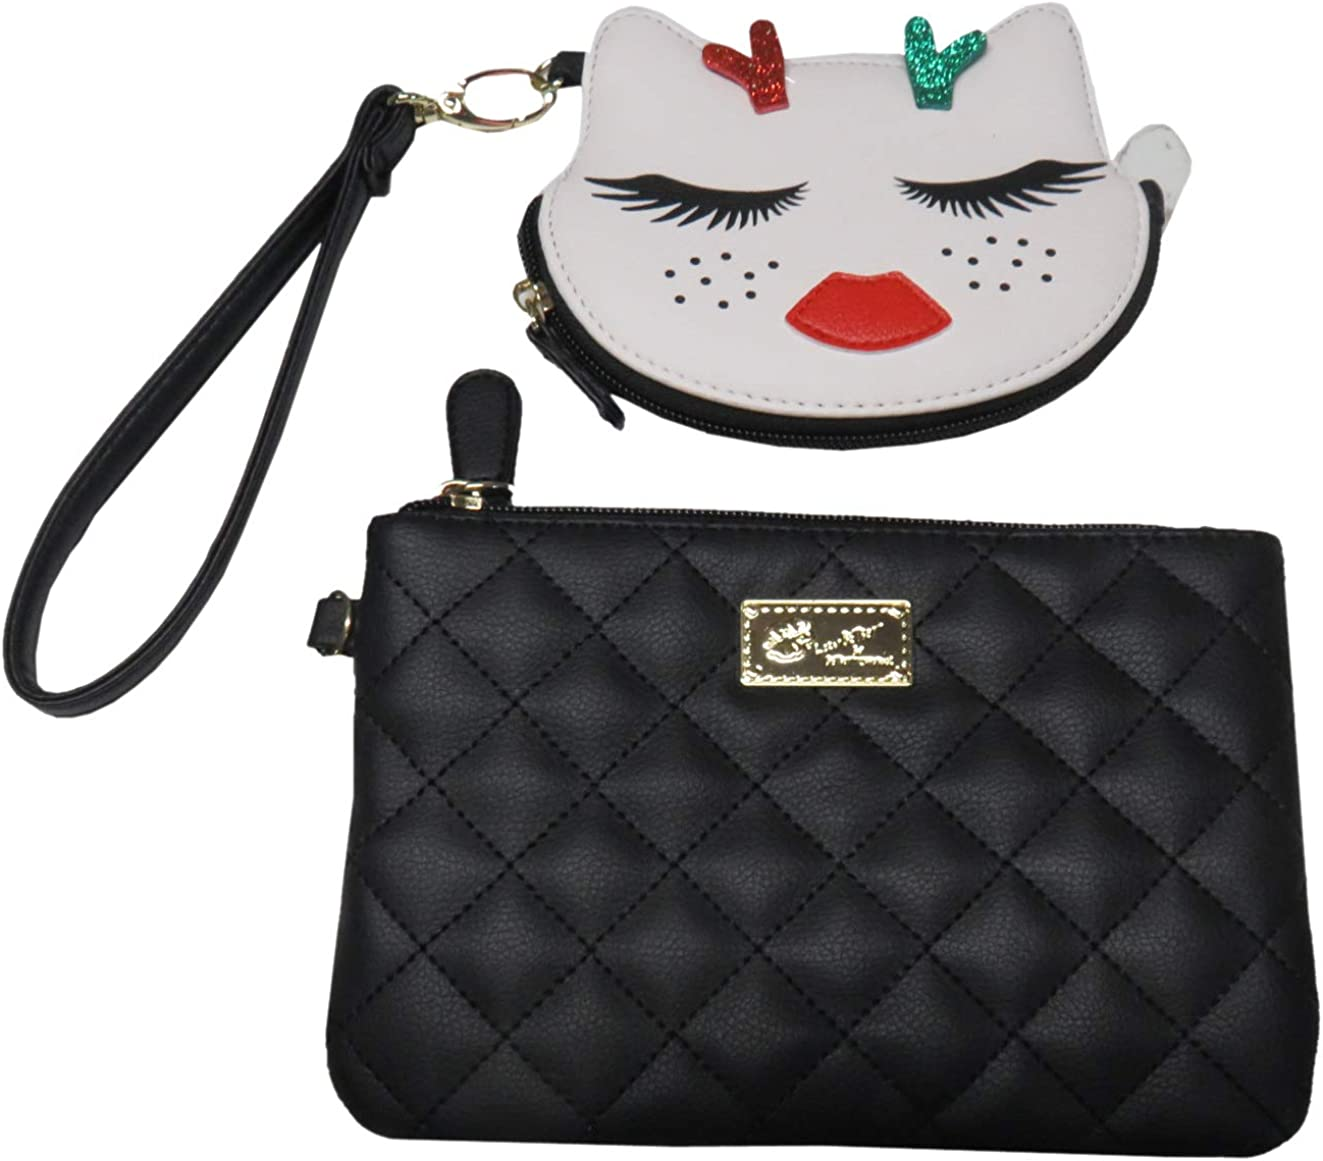 Luv Betsey Top Zip Wristlet with Change Purse, Black